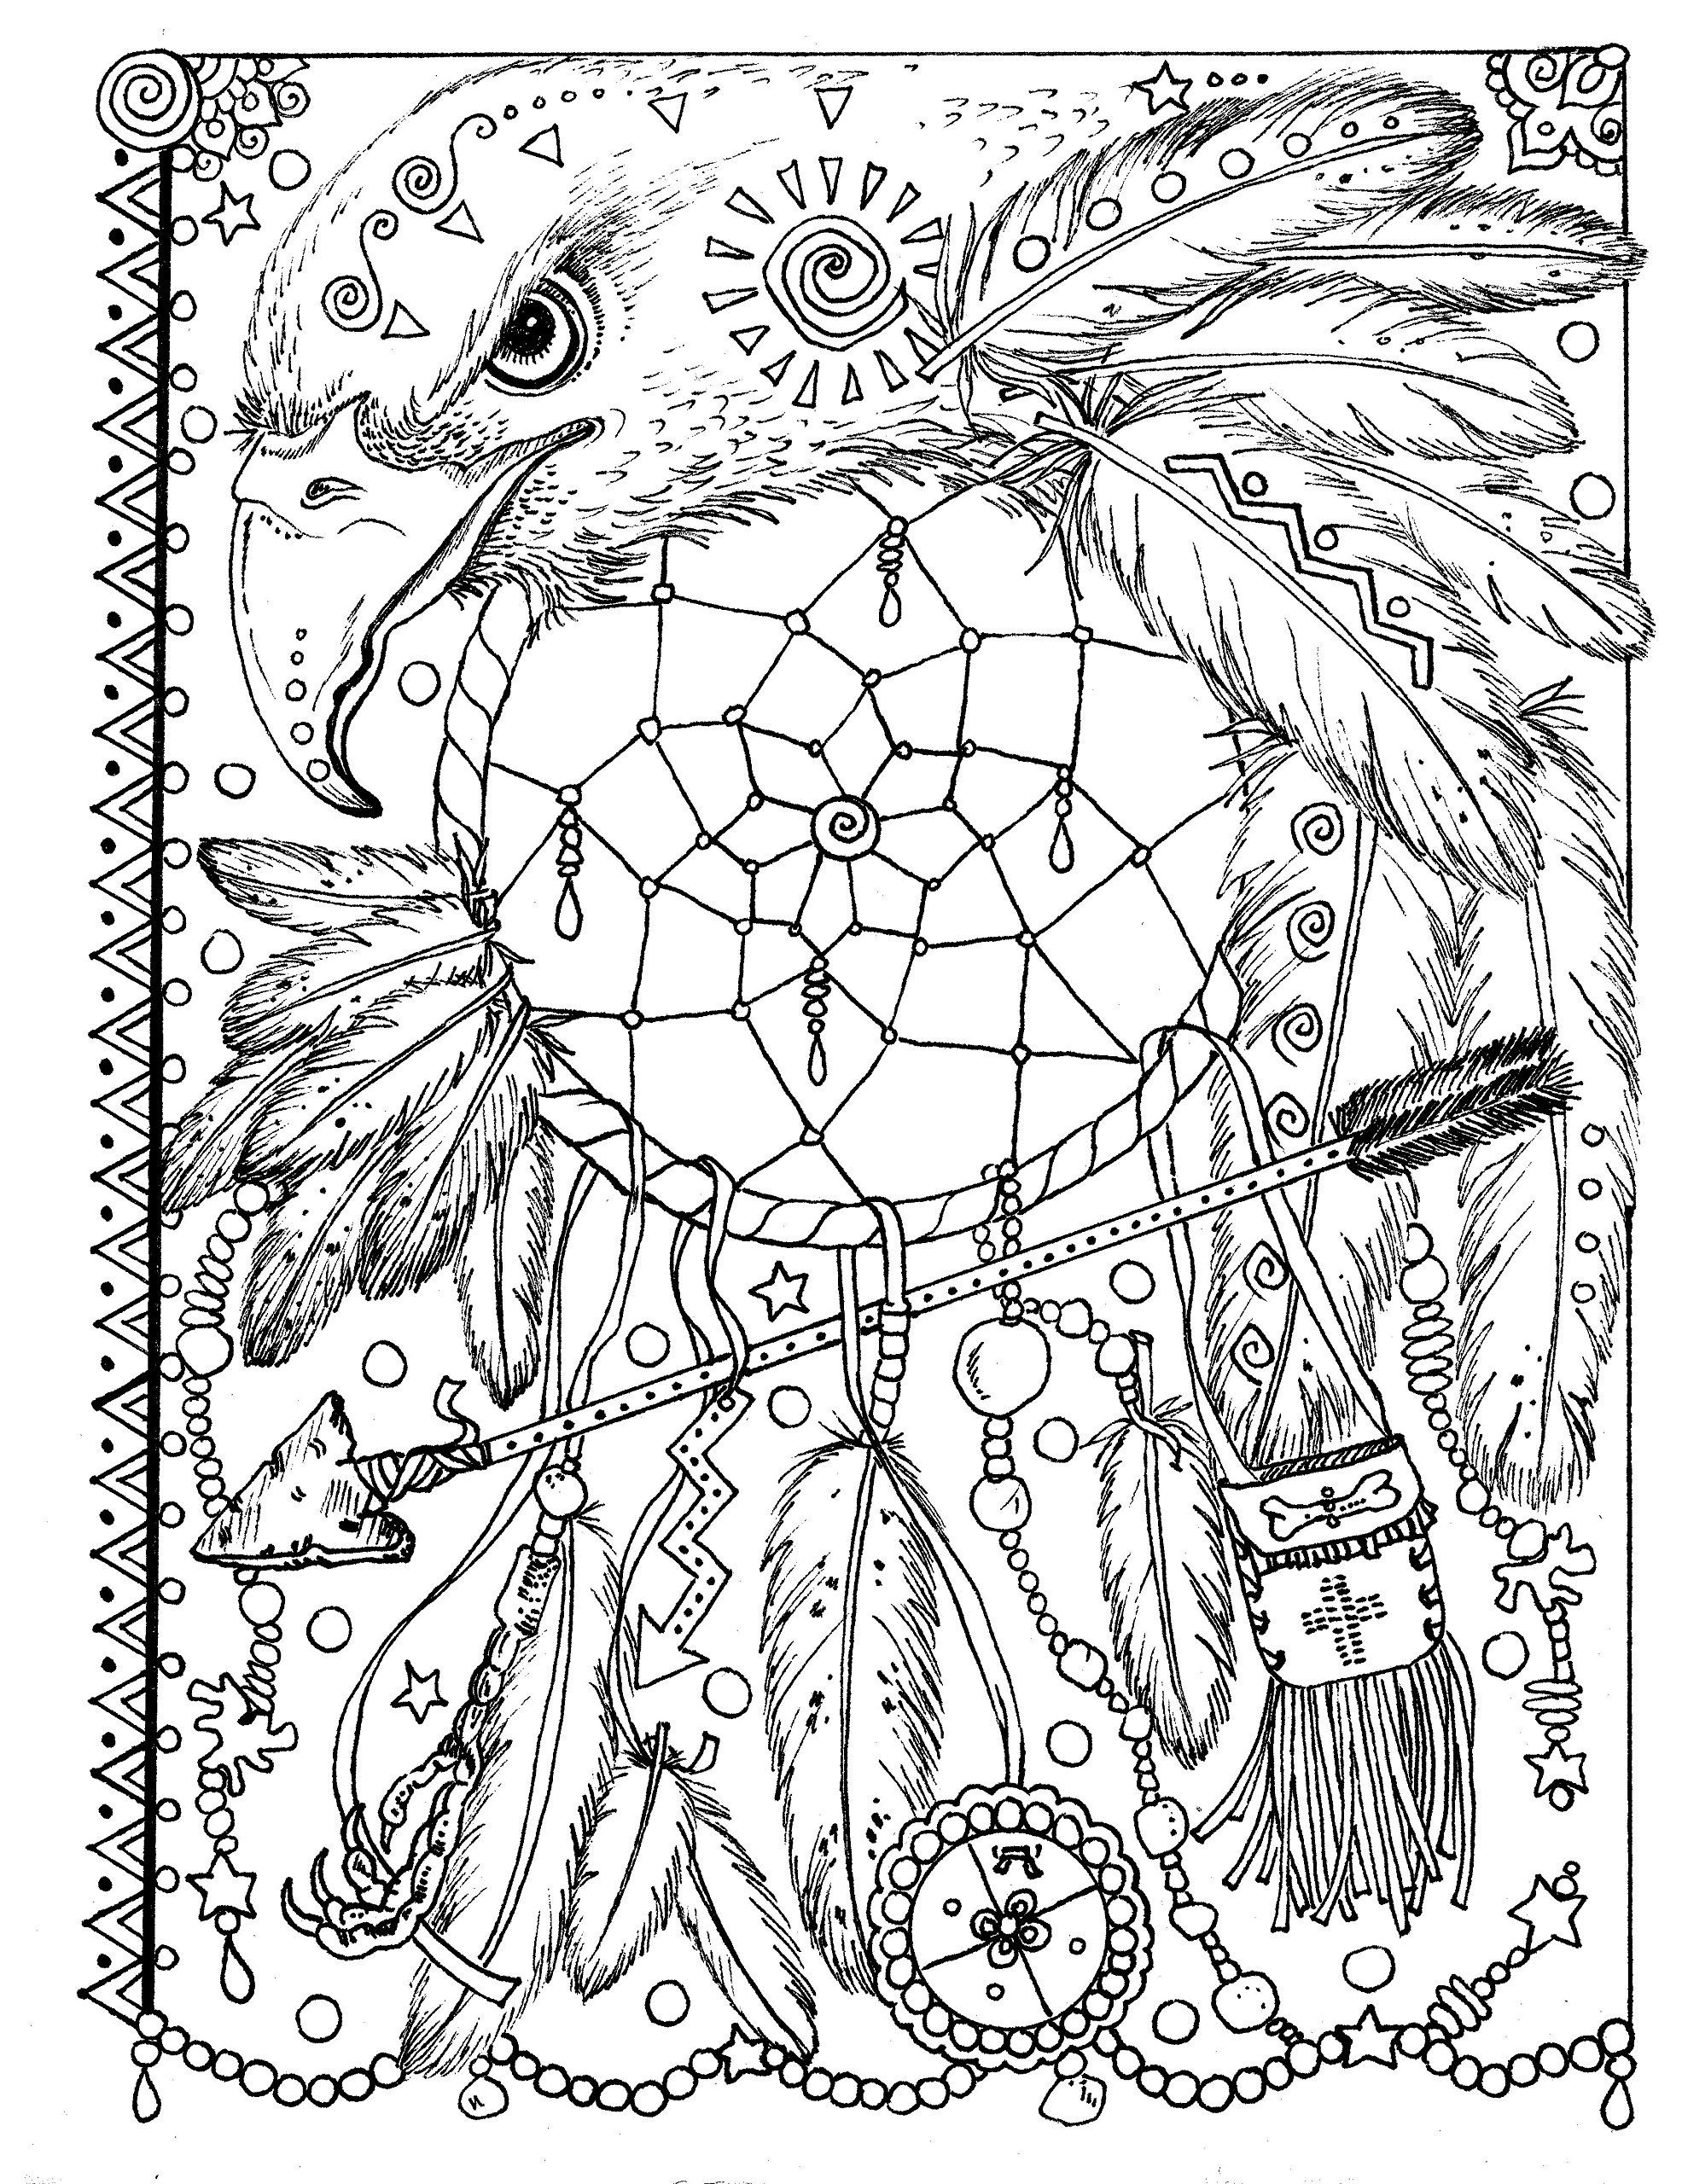 A fun magic coloring book amazon - Animal Spirit Dreamcatchers Coloring Fun For All Ages Deborah Muller 0641243892559 Amazon